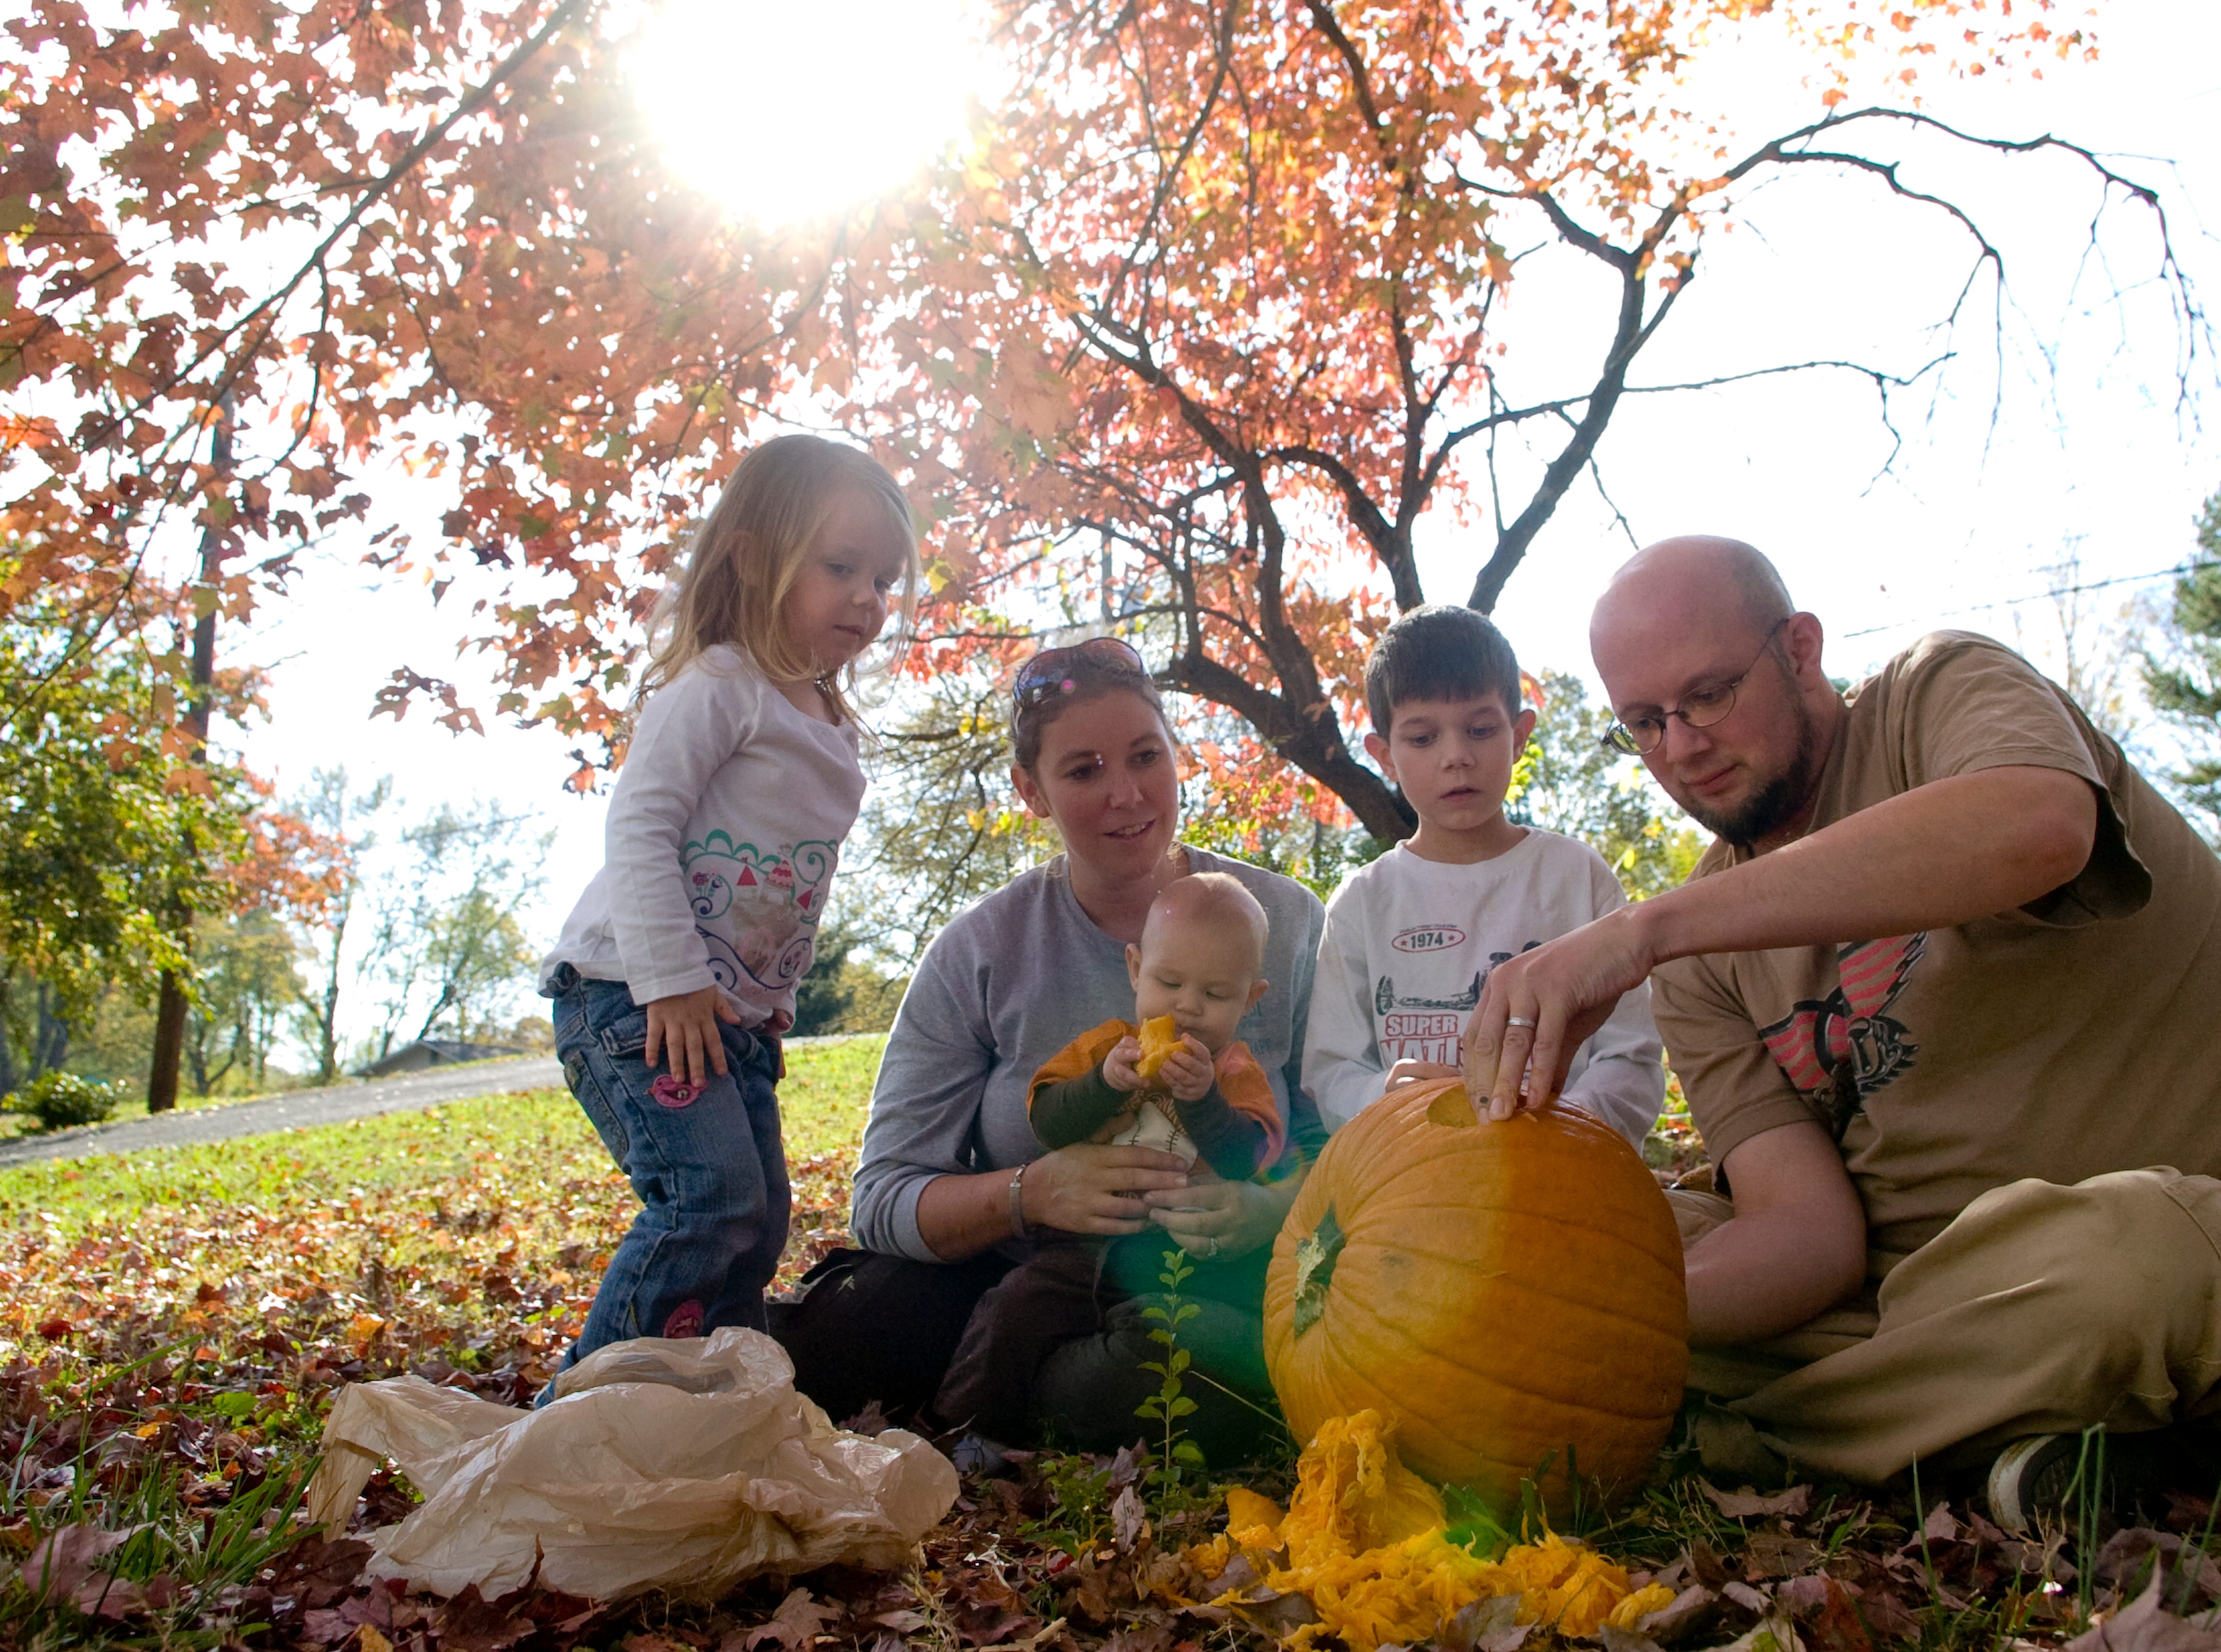 The Schultz family, from left, Emma, 3, Melanie, Zachary, 7 months, Matthew, 6, and Christopher carve a pumpkin in their yard on Halloween day on Sunday, October 31, 2010.